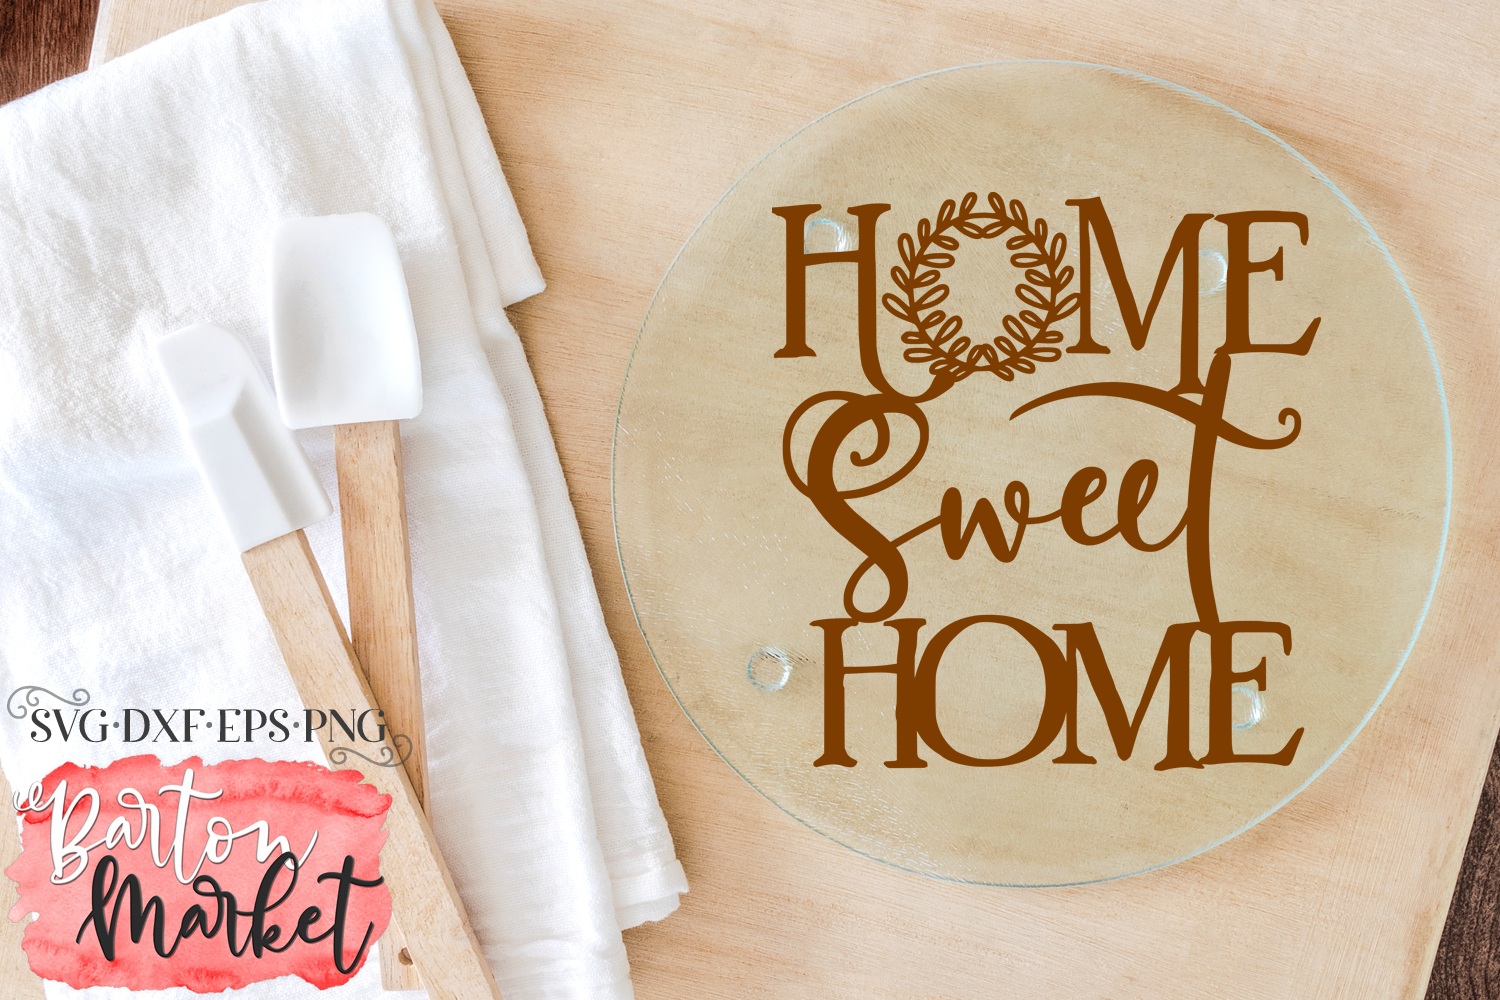 Home Sweet Home SVG DXF EPS PNG example image 2